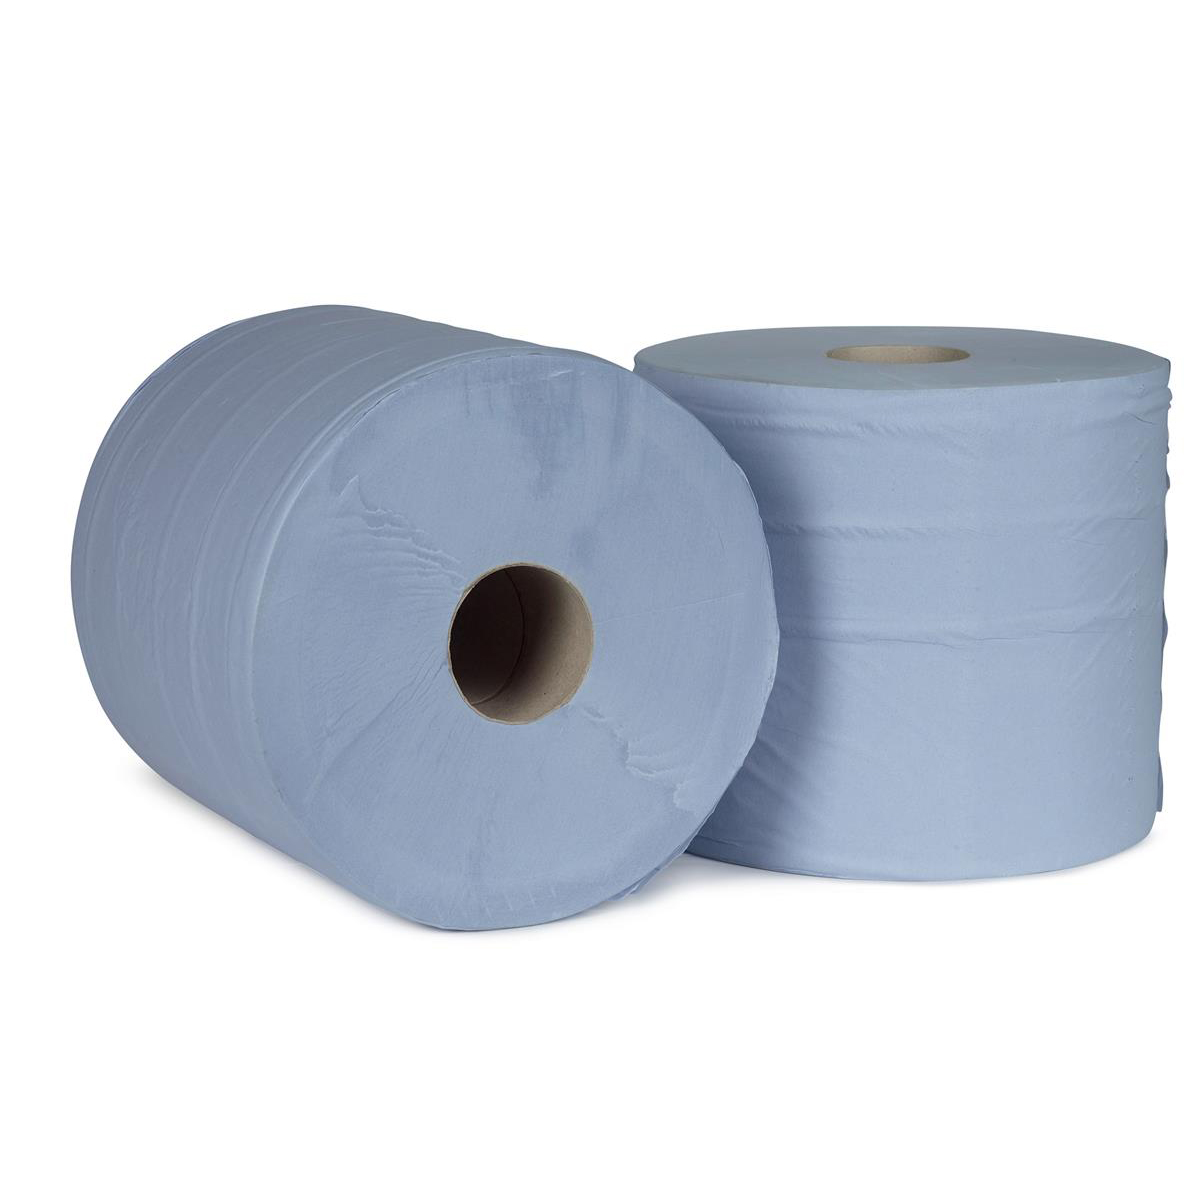 5 Star Facilities Giant Wiper Roll 2-ply Perforated Sheet 370x370mm 40gsm 1000 Sheets Blue [Pack 2]